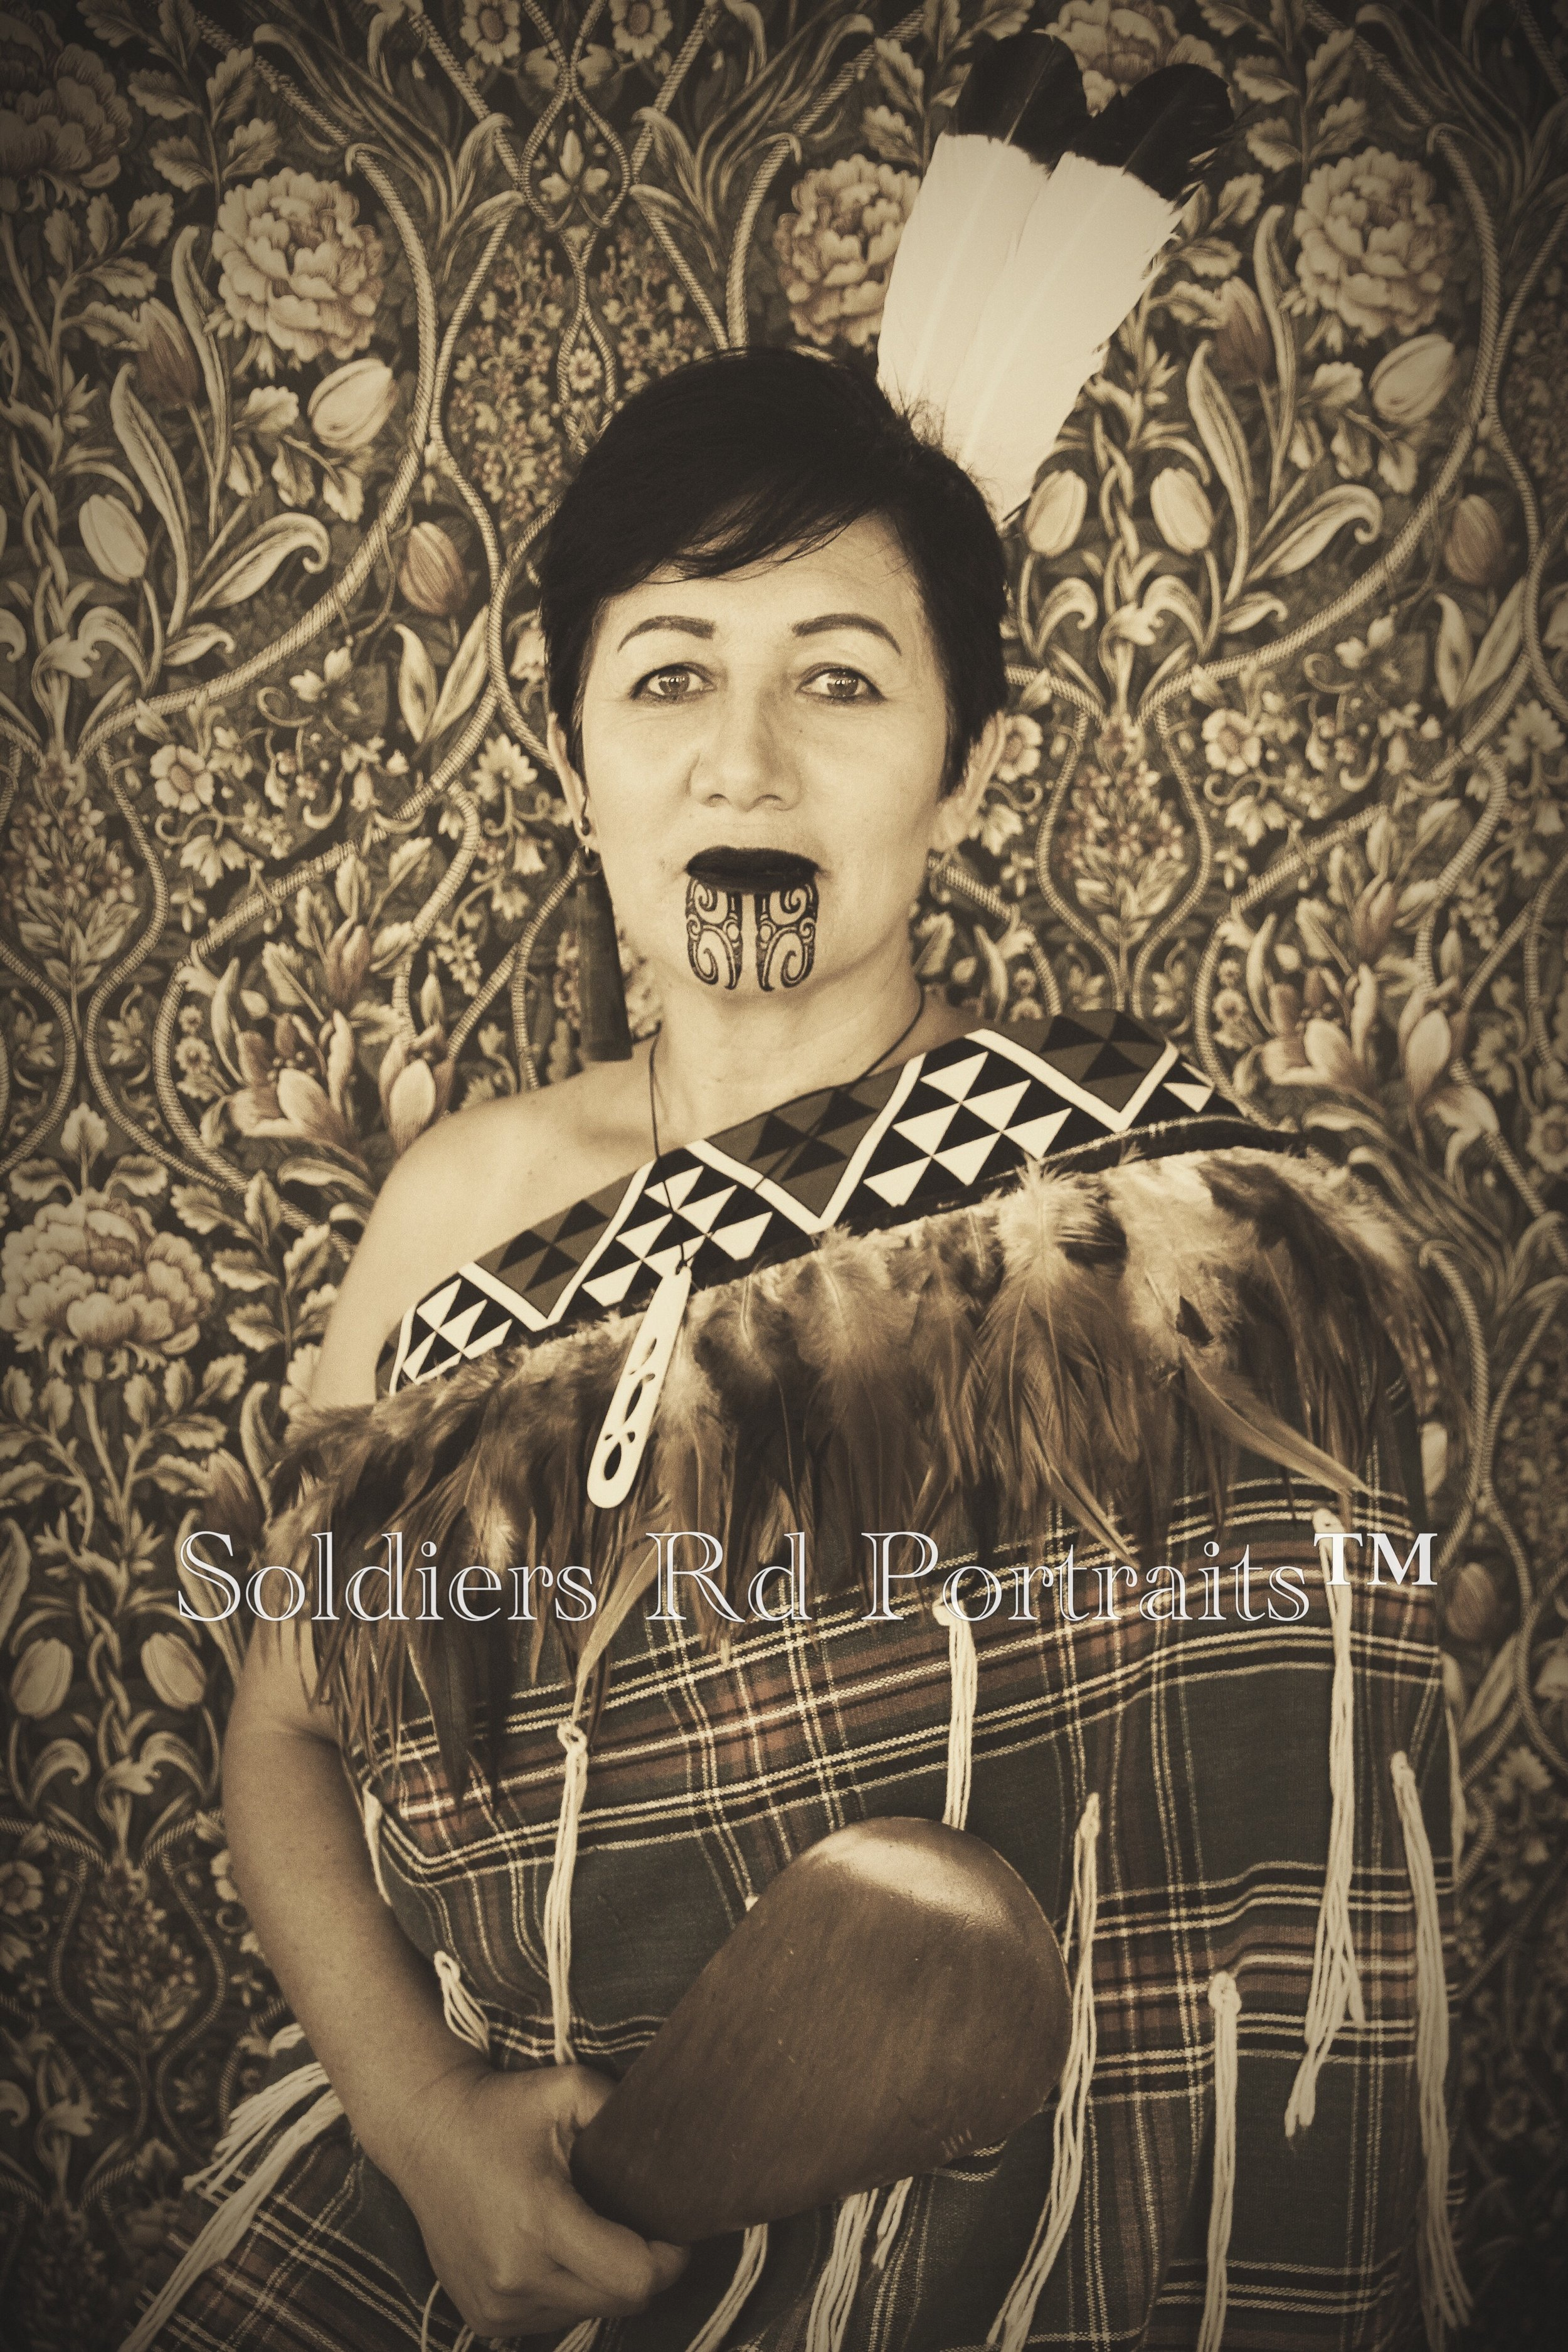 Diahla Newton - WHARE 4 WHANAU PROGRAMME CO-ORDINATOR / REGISTERED COUNSELLORKiaora, my name is Diahla, I am a mother of 5 girls, a nanny to 1 moko boy and a wife of 30+ years. We moved from Piopio to Tauranga in 2006 to give our family more opportunities a small rural town could not provide. Since living here, I have completed a Small Business Management Course and my Bachelor of Counselling which has led me to my ideal job as a Programme Co-ordinator and Counsellor with TTW.I have been involved in 3 Women's Empowerment Program over the last 2yrs in TTW. Wahine Toa as a co-facilitator, Kotahi Whanau as the developer and facilitator and now Program Coordinator for Whare4Whanau Warrant of Fitness. All 3 programs have always been focussed on empowering our women in our emergency housing to become agents of change. I am passionate about empowering and supporting our women and it is a huge privilege to be on this journey with them.I am also a Counsellor, Provisionally Registered with NZAC and have worked with youth, adults, elderly and families. However, now I work solely with adult individuals working with a wide range of issues that include but not exclusive to: Grief & loss, depression, relationship issues, suicide, anxiety and separation. My main therapeutic approaches are Client Centred, Solution Focussed and Strength Base as I am a firm believer that beyond issues are resources of strengths, abilities and resiliencies.